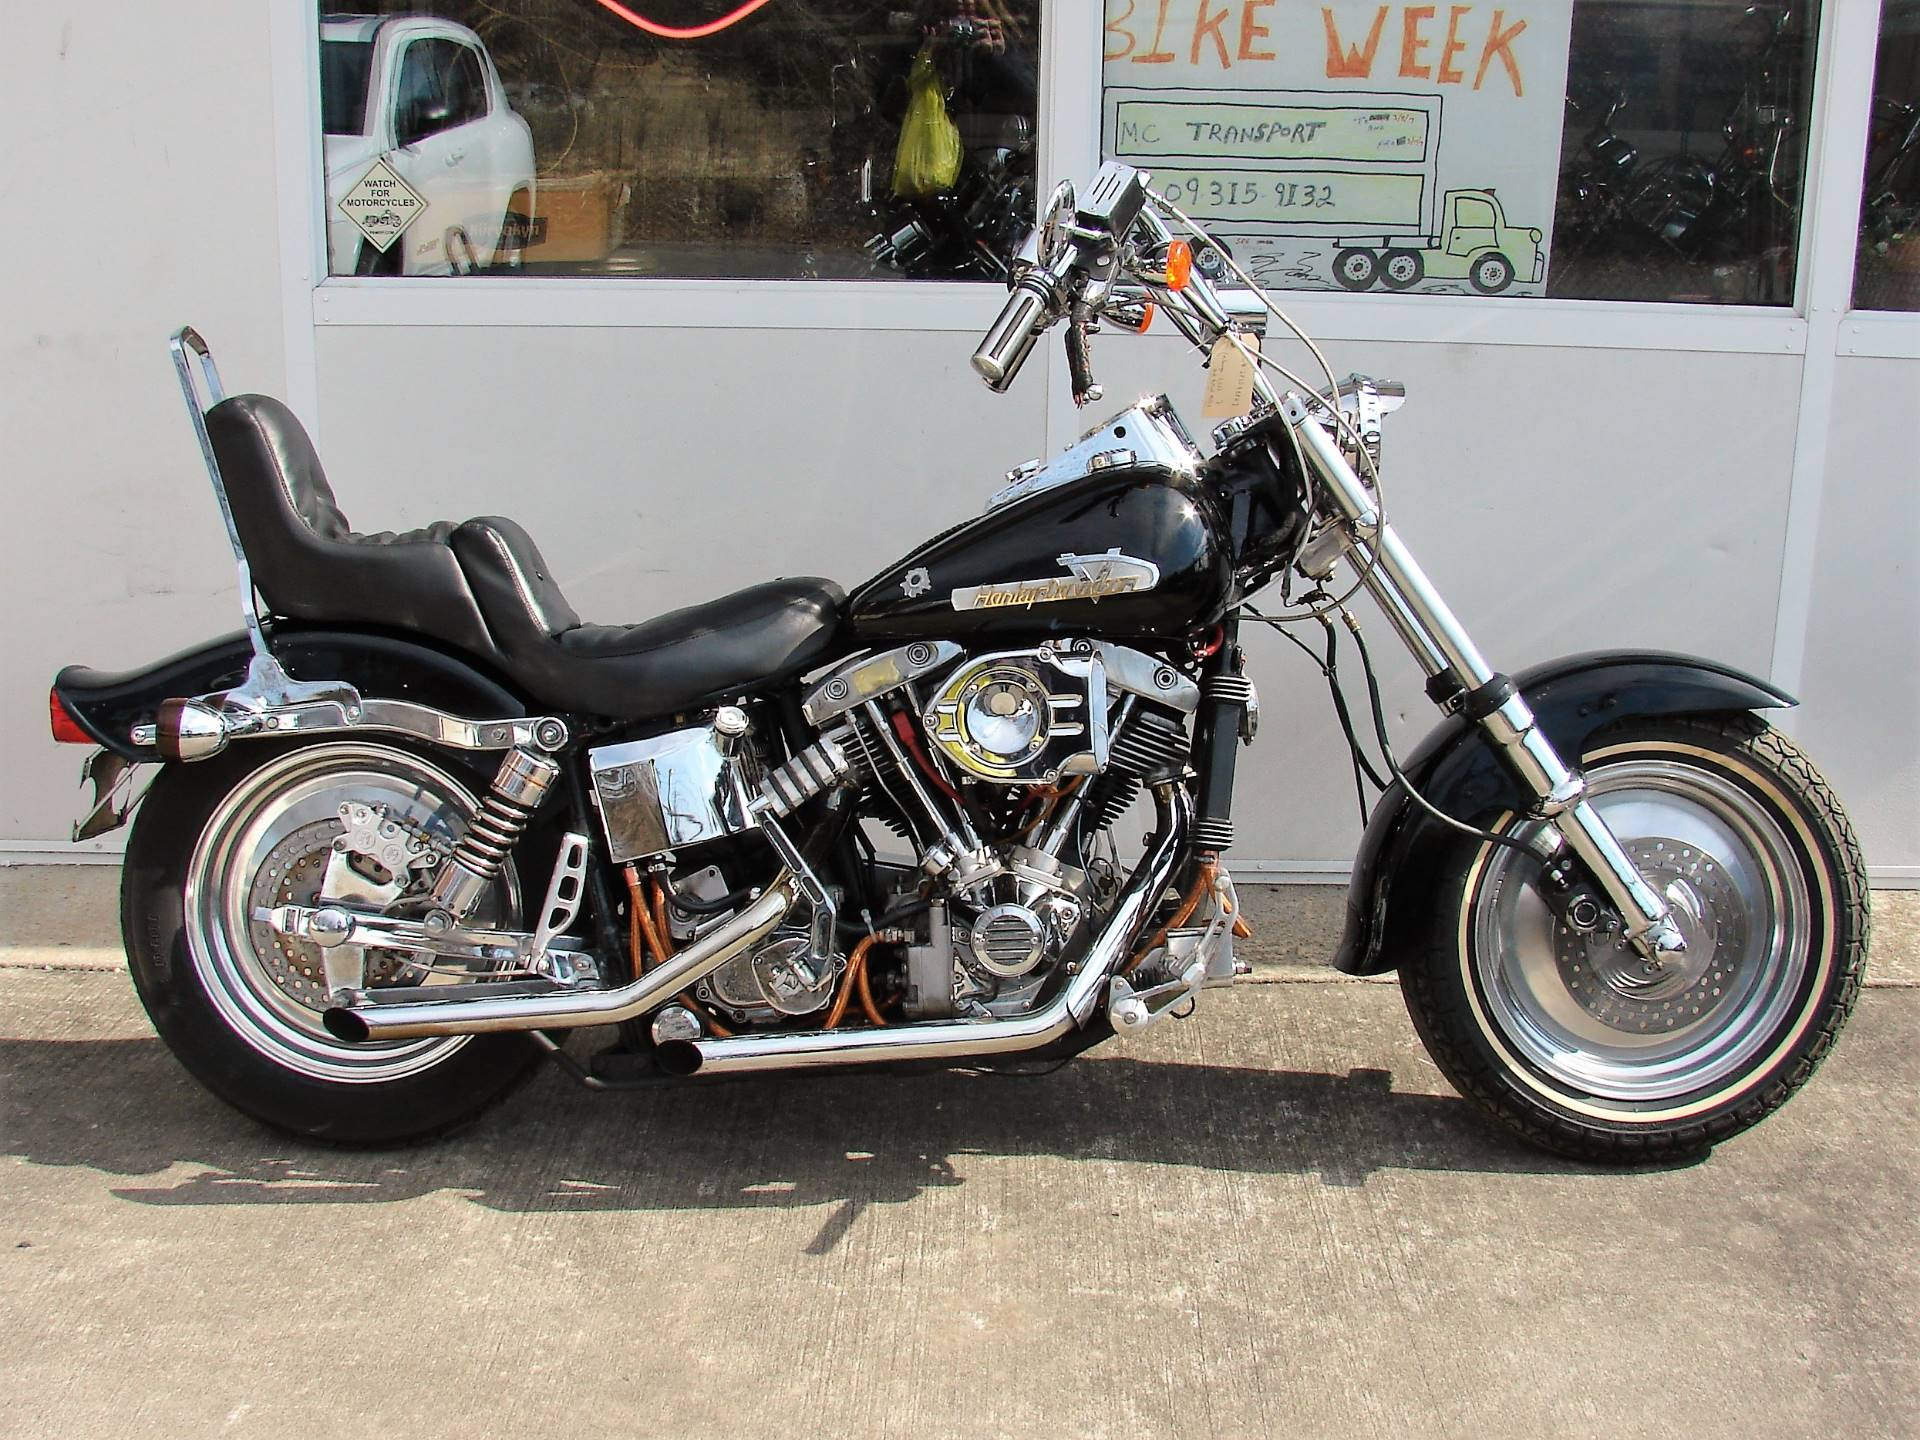 1977 Harley-Davidson Shovel Head  FXS-1200 in Williamstown, New Jersey - Photo 12